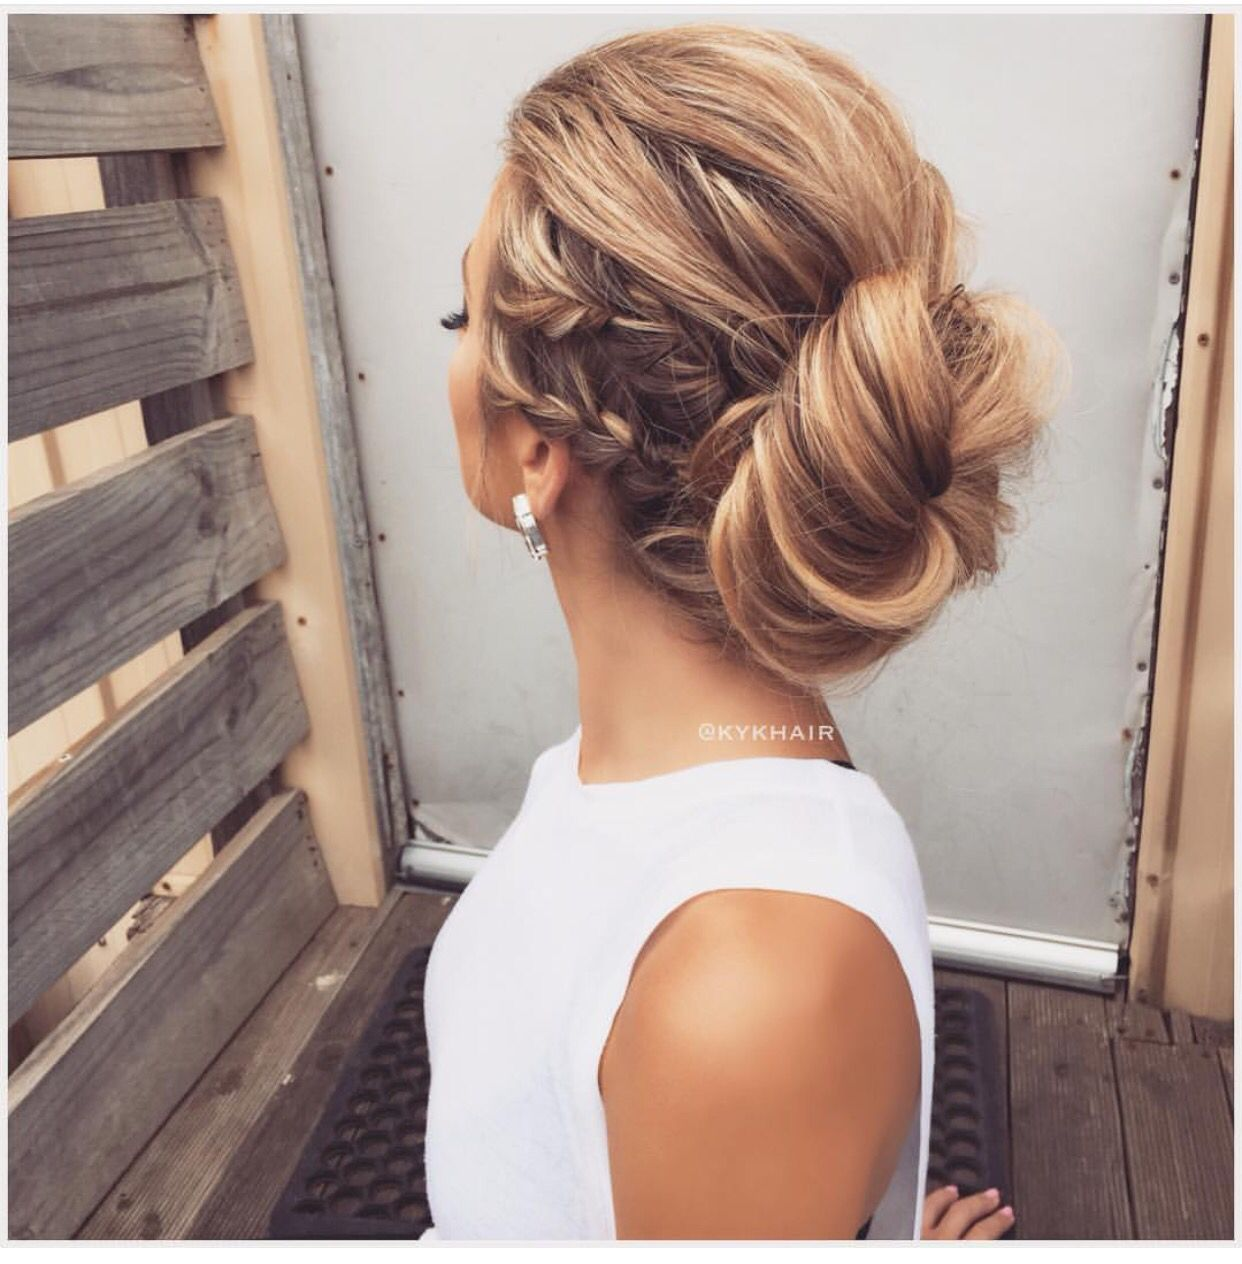 Simple Updo S And A Double Braid Hair Styles Long Hair Styles Braids For Long Hair